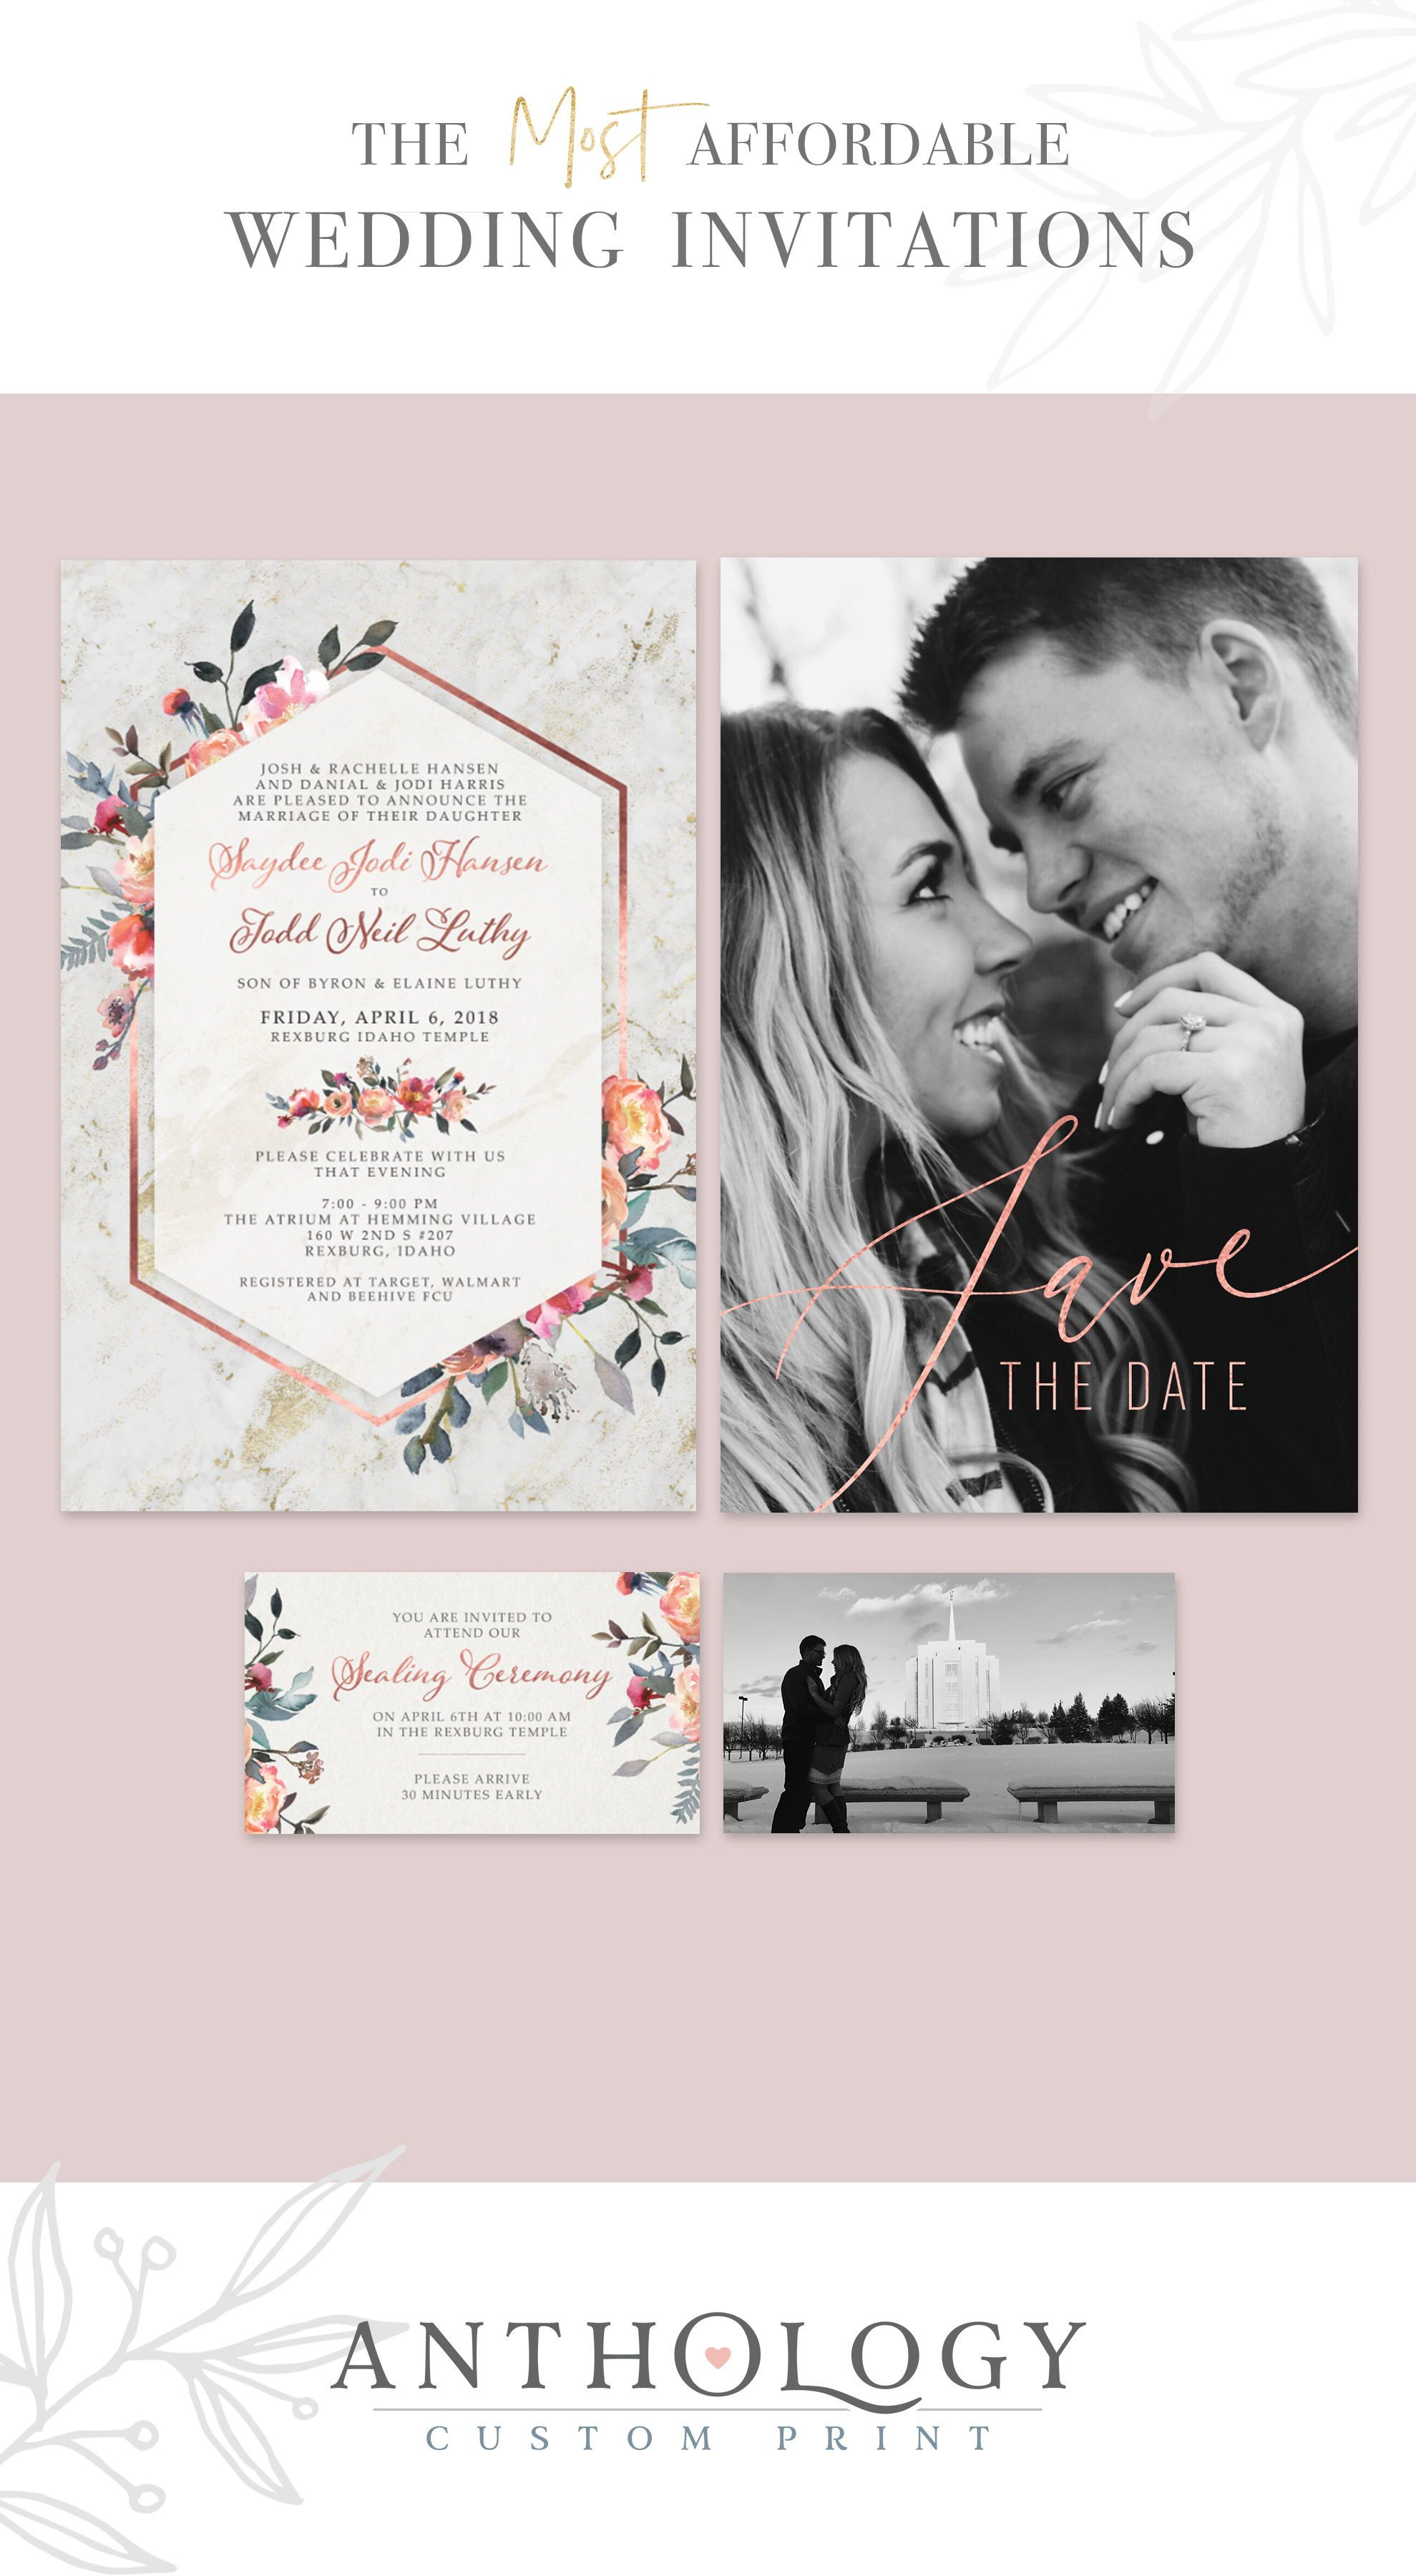 Watercolor Floral Wedding Invites Affordable Wedding Invitations Ant Rose Gold Wedding Invitations Affordable Wedding Invitations Gold Wedding Invitations